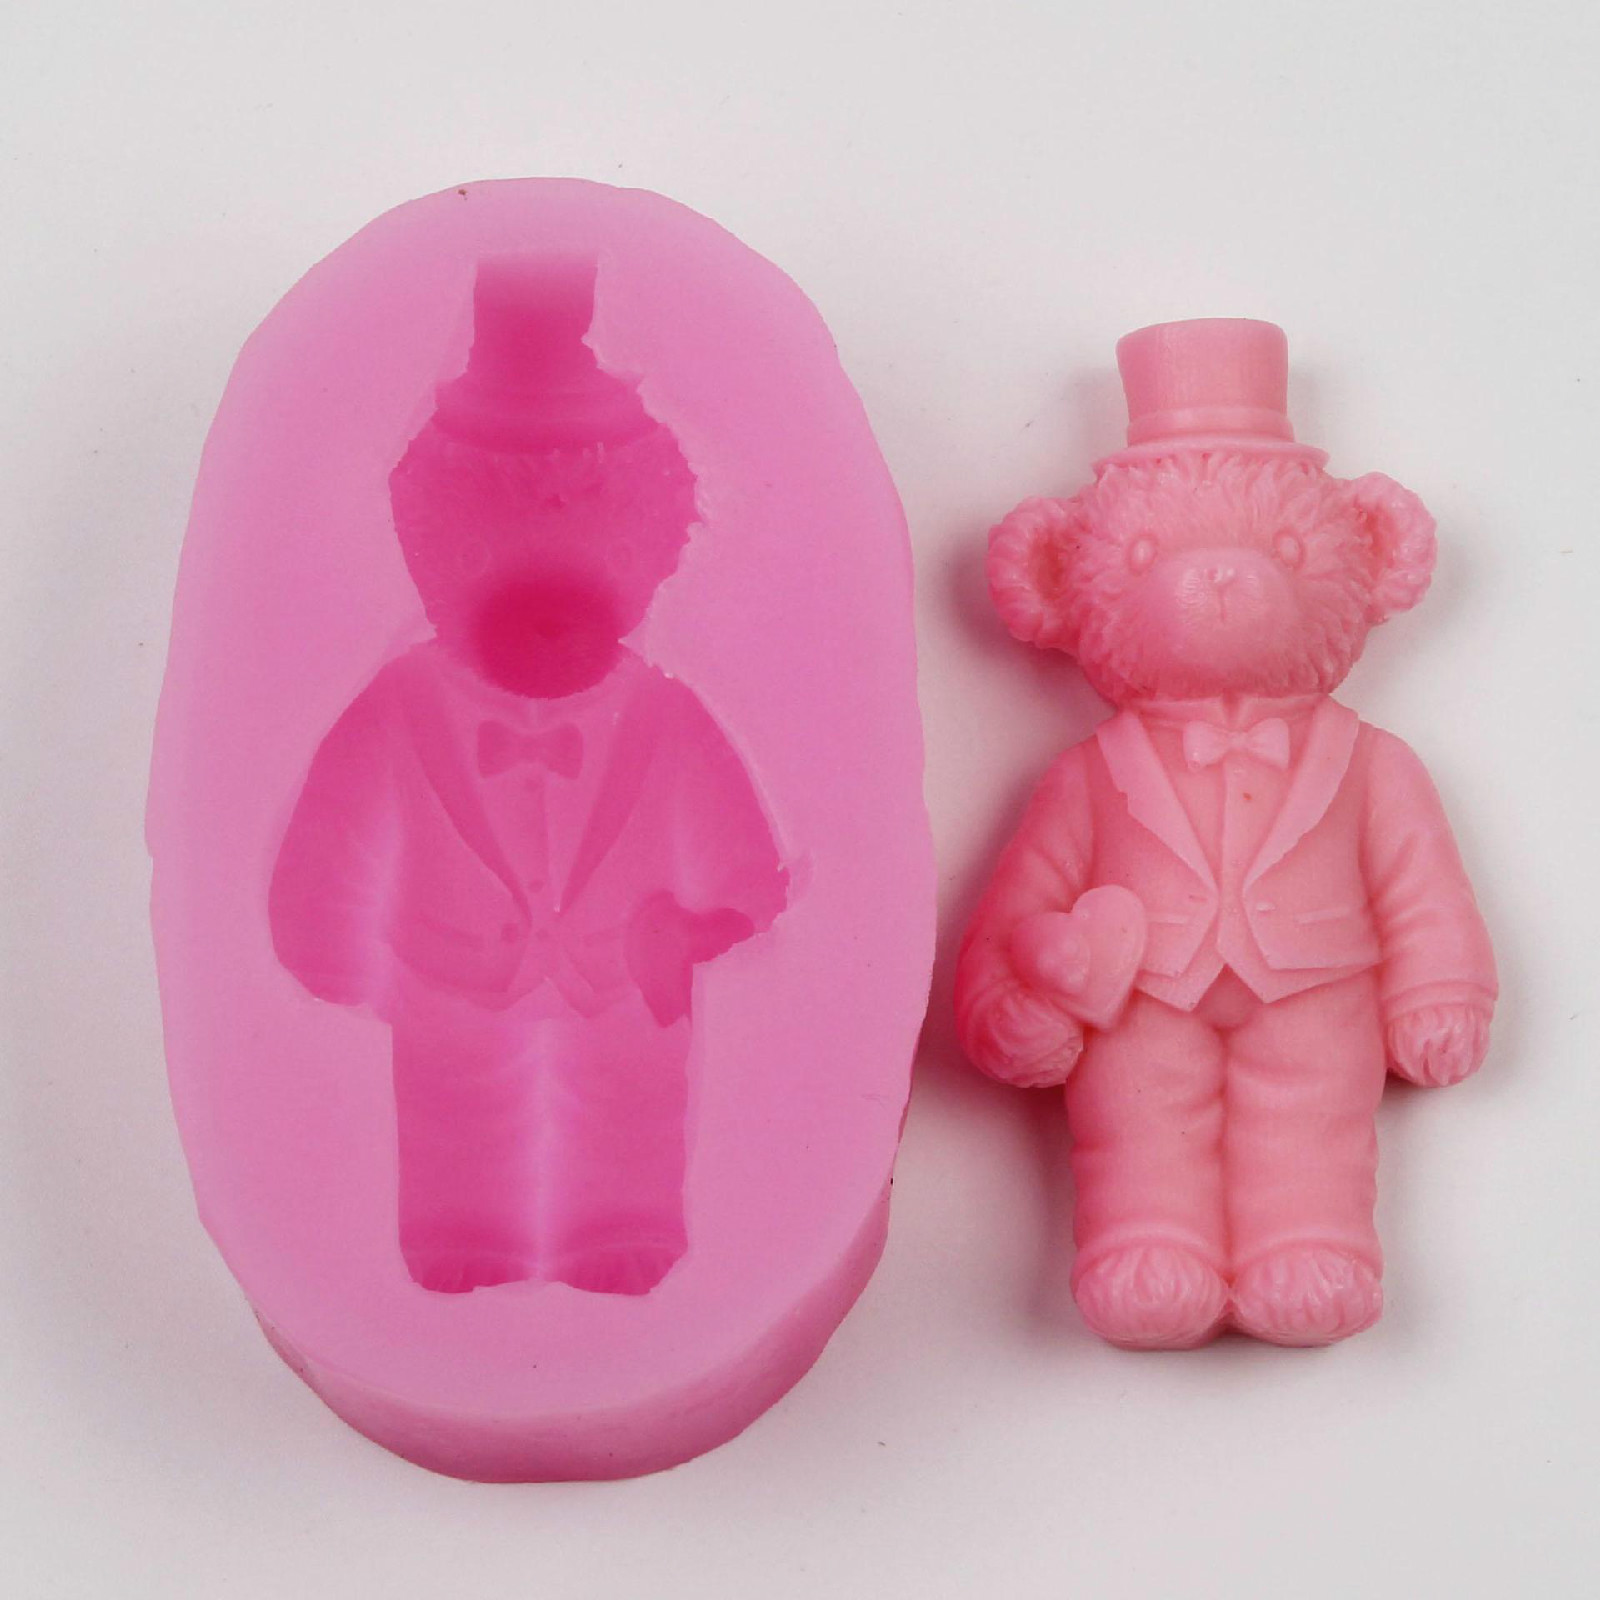 bear silicone mold resin pendant mould die DIY Craft Clay Making Handmade Plaster Silicone Mould